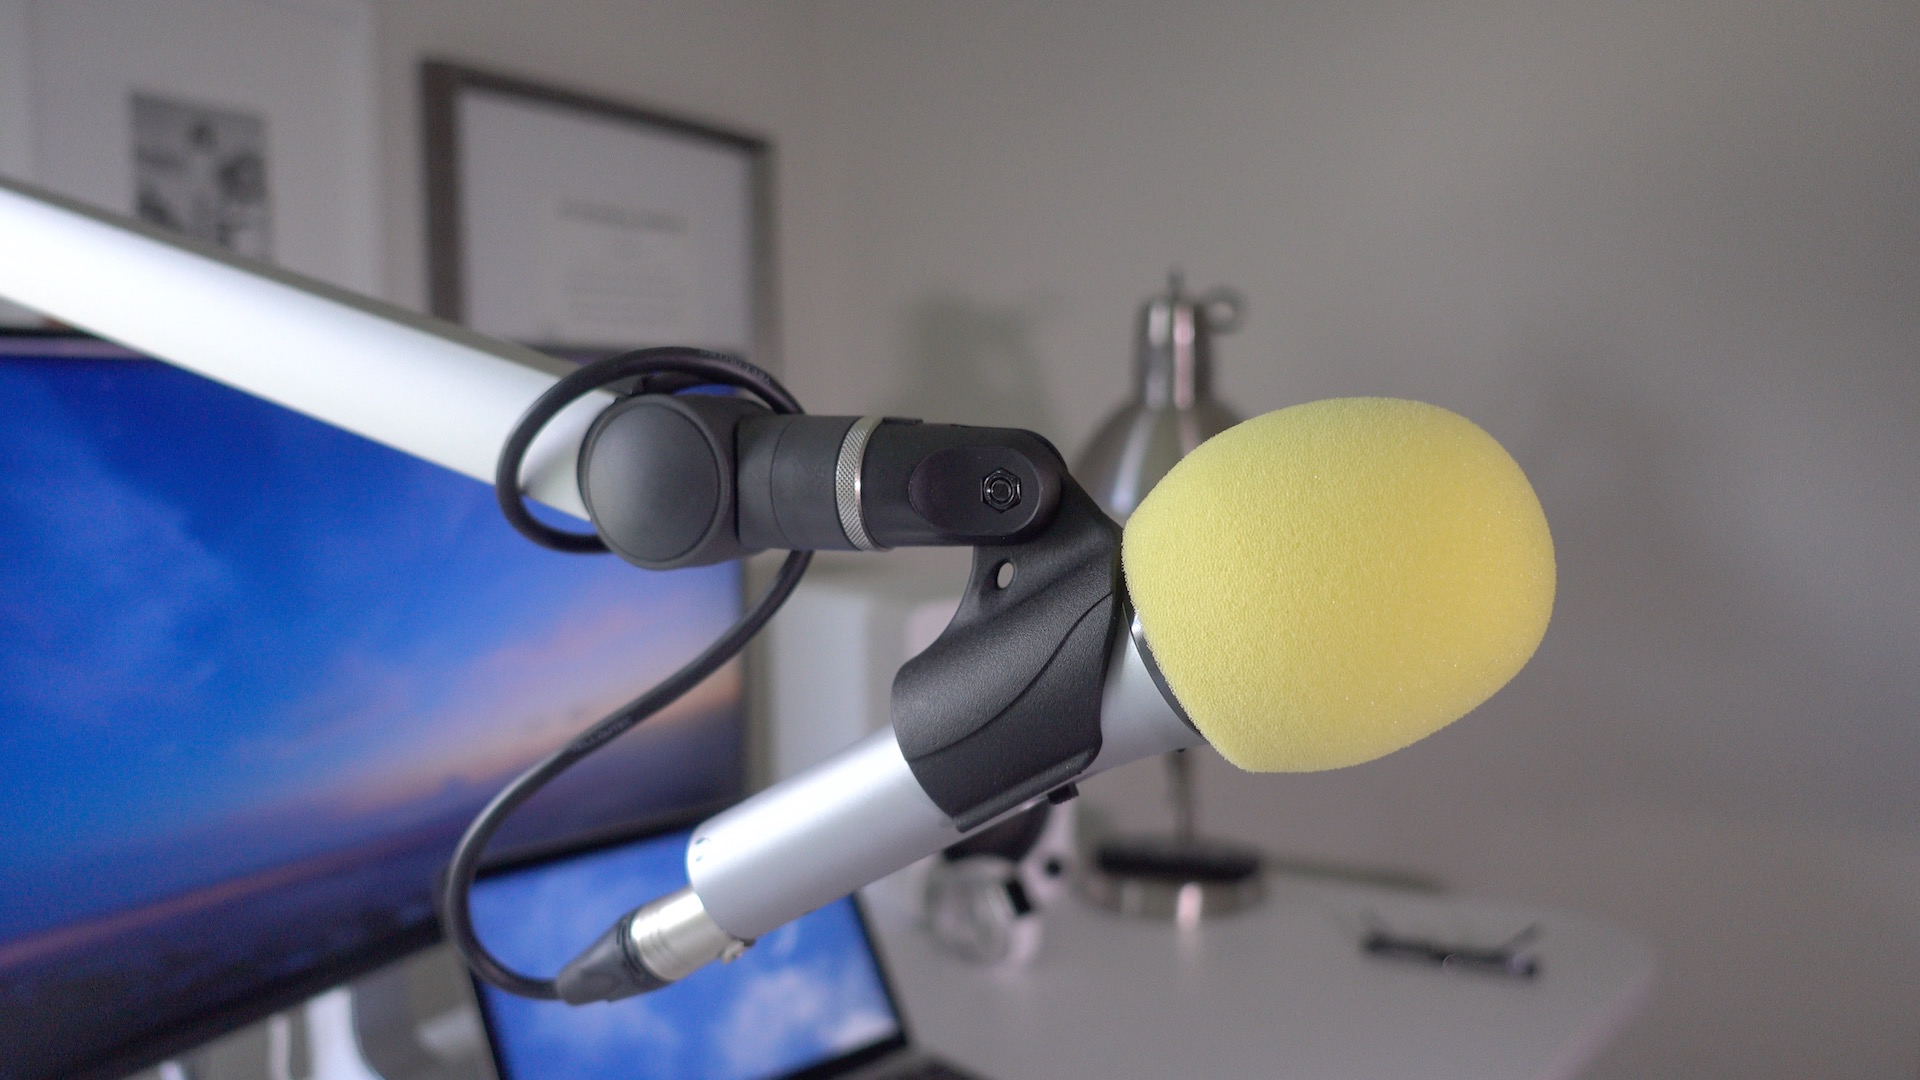 Podcast Voiceover Microphone Arm